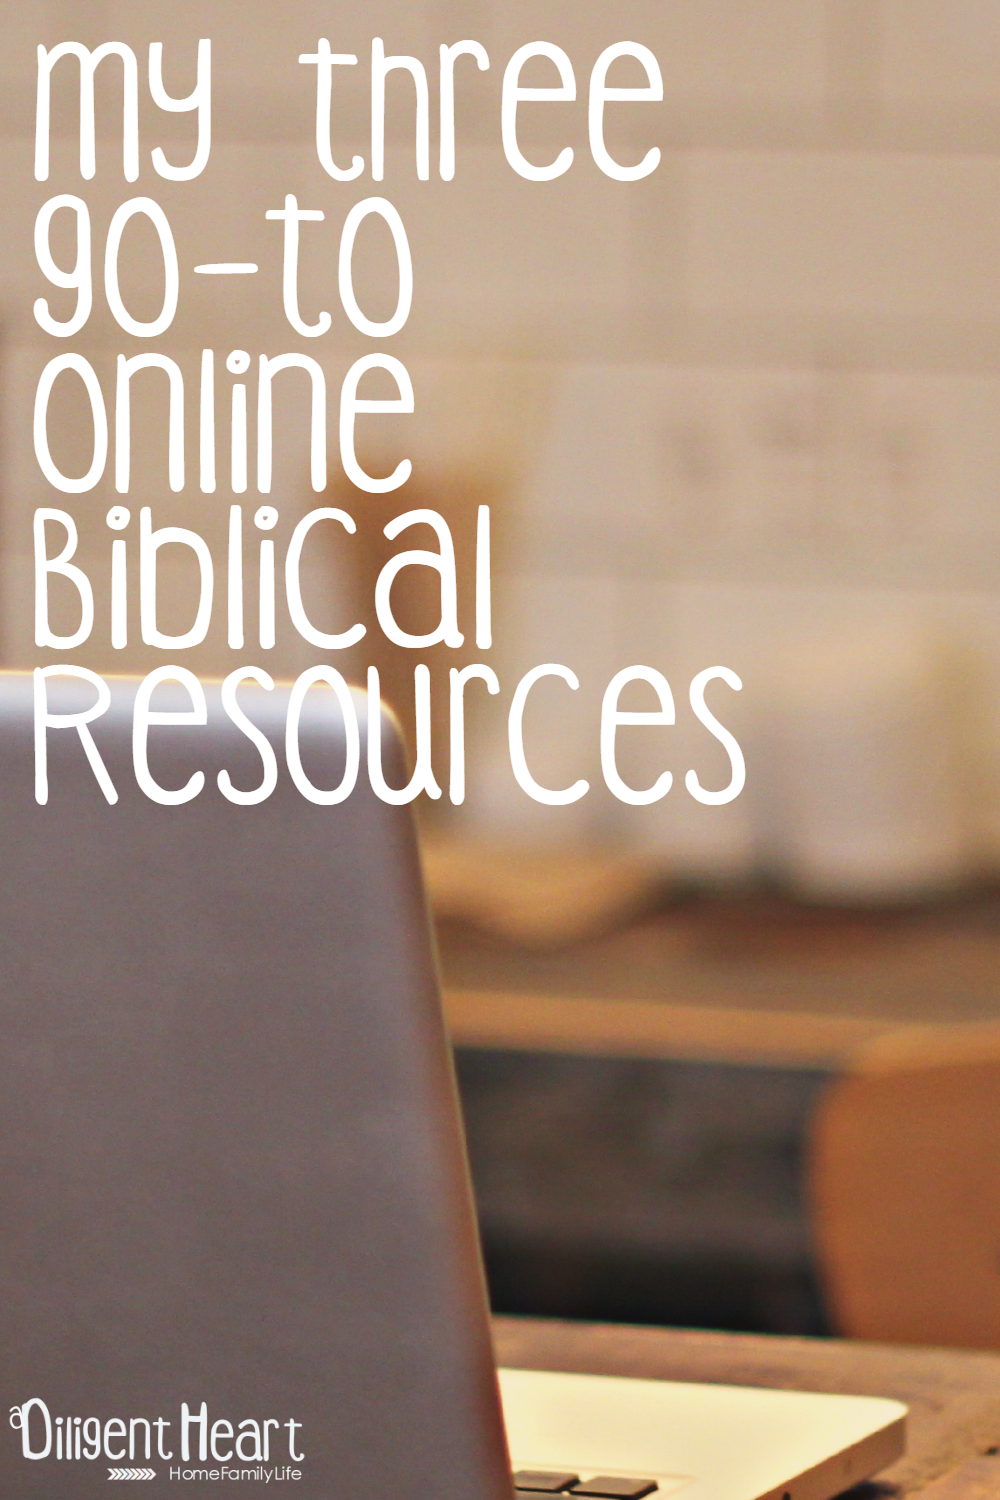 Most of us have our go-to places for our most common daily needs. My primary go-to place for anything scripture is of course my Bible. But, I have found some wonderful online resources for anything scripture related that I am just loving! My three go-to Online Biblical Resources | adiligentheart.com